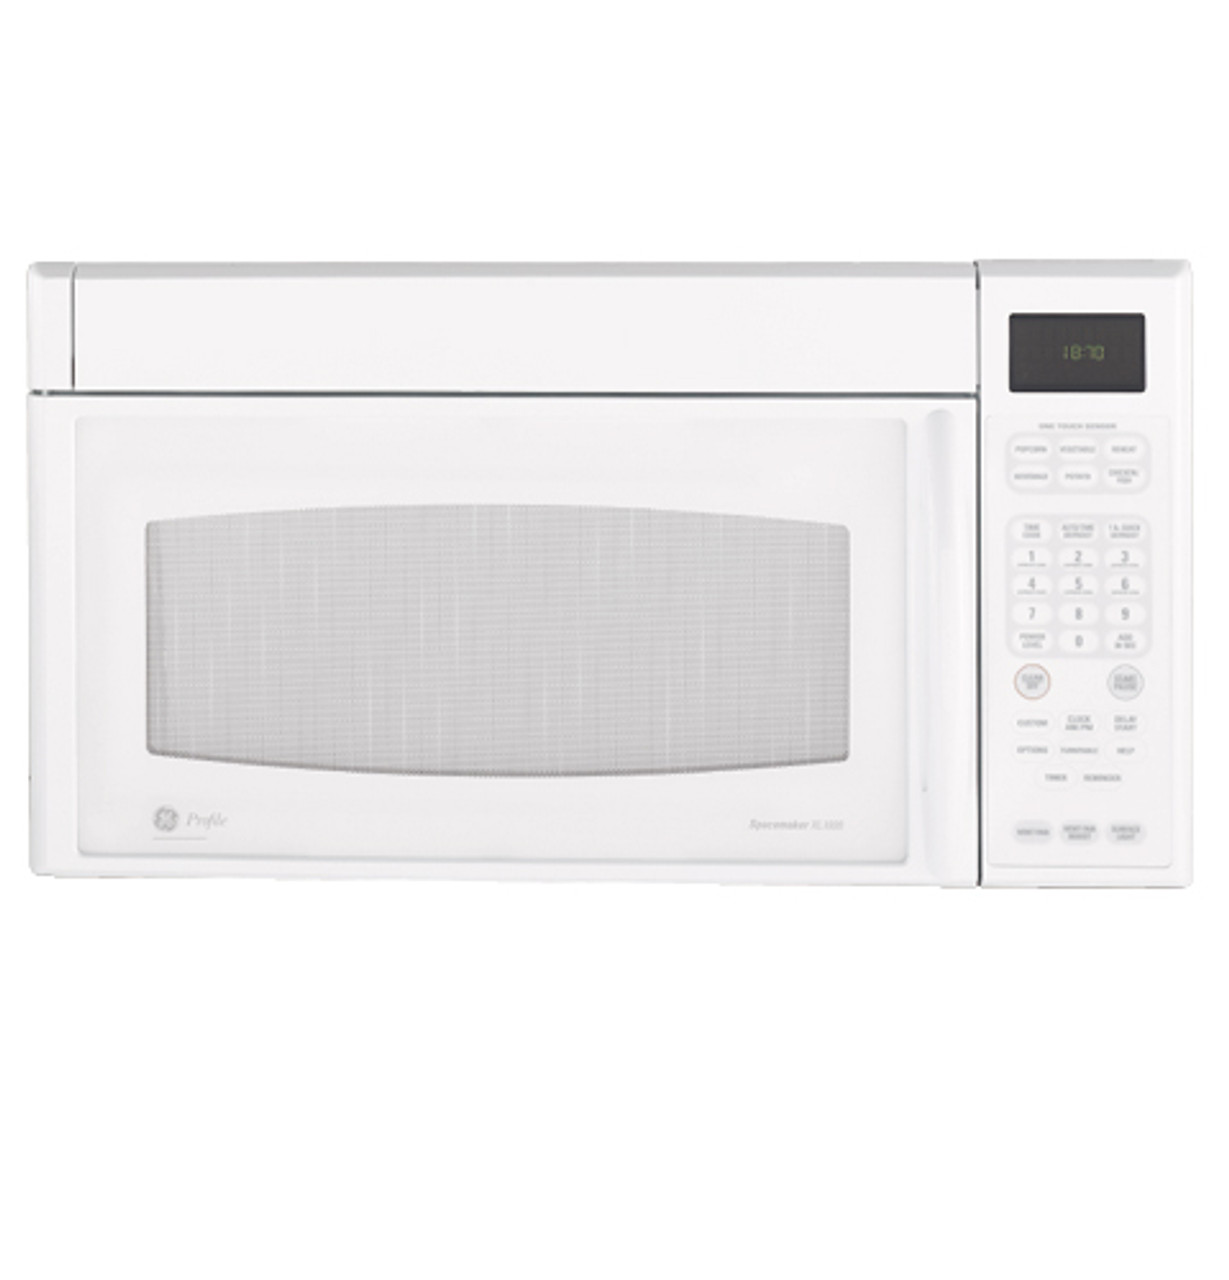 ge profile spacemaker xl1800 microwave oven jvm1870wf